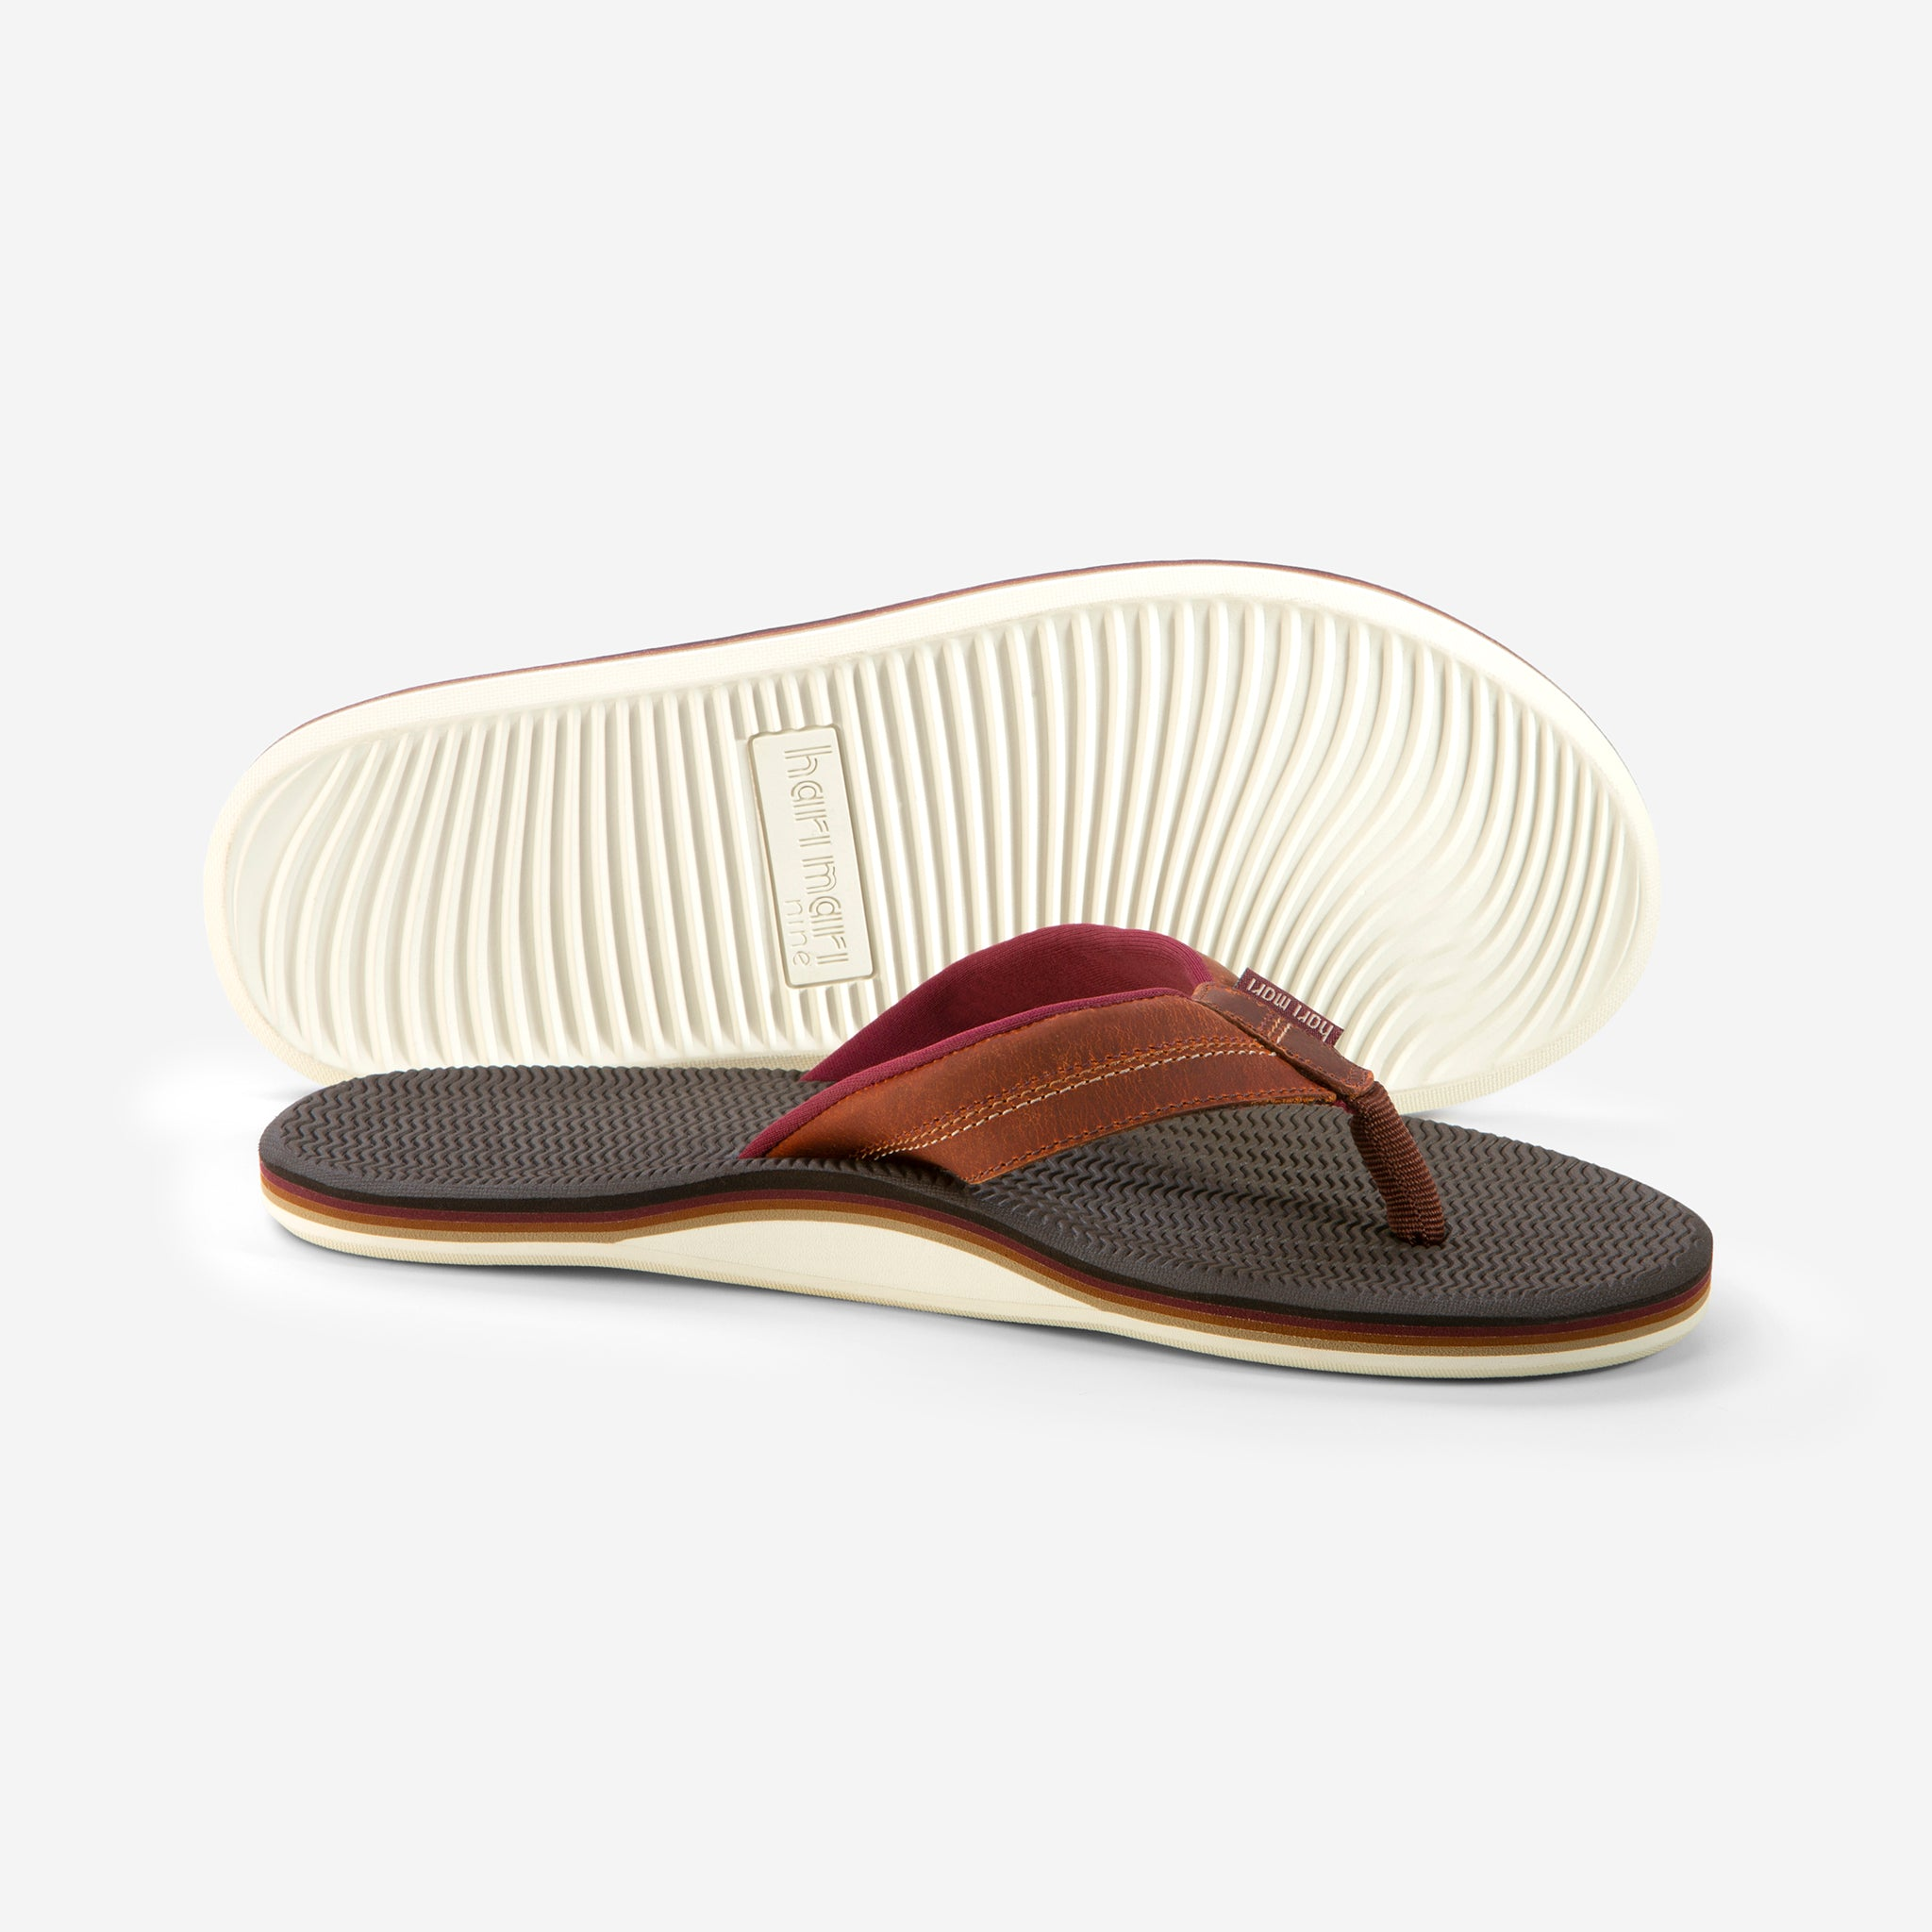 Brazos LX - Men's - Brown - Side/Bottom View